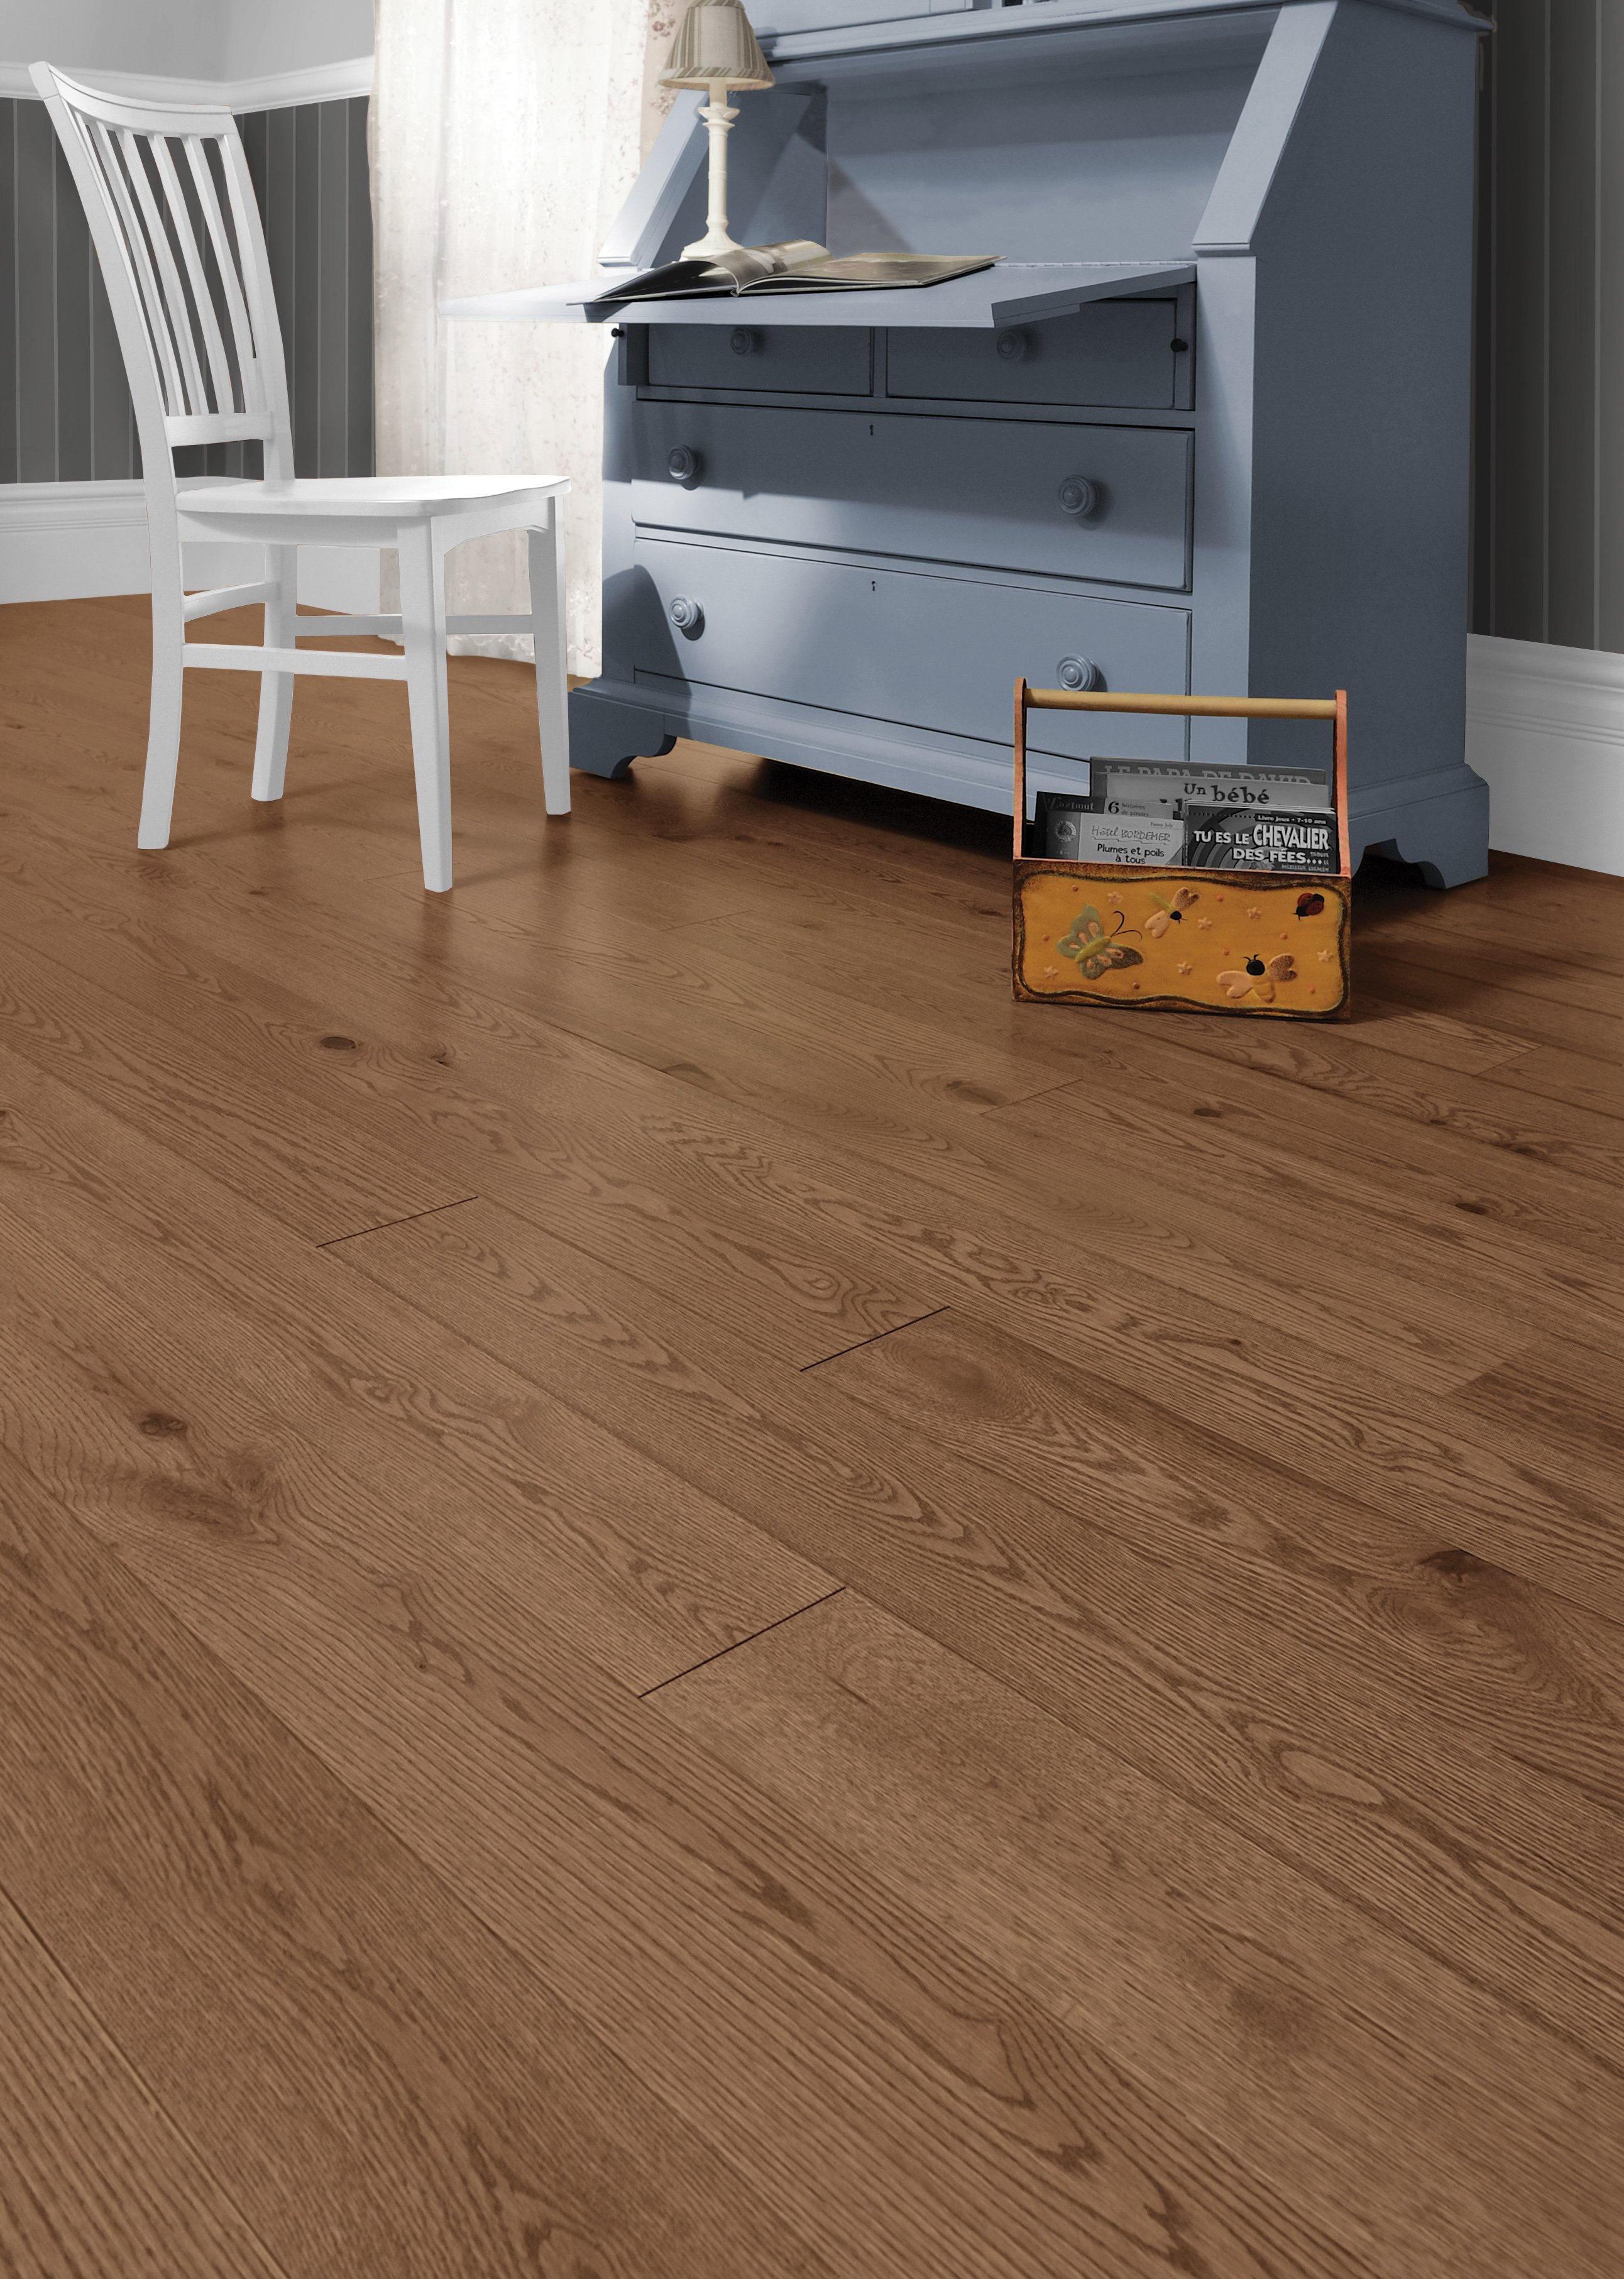 Red Oak Carmel Character Brushed - Ambience image